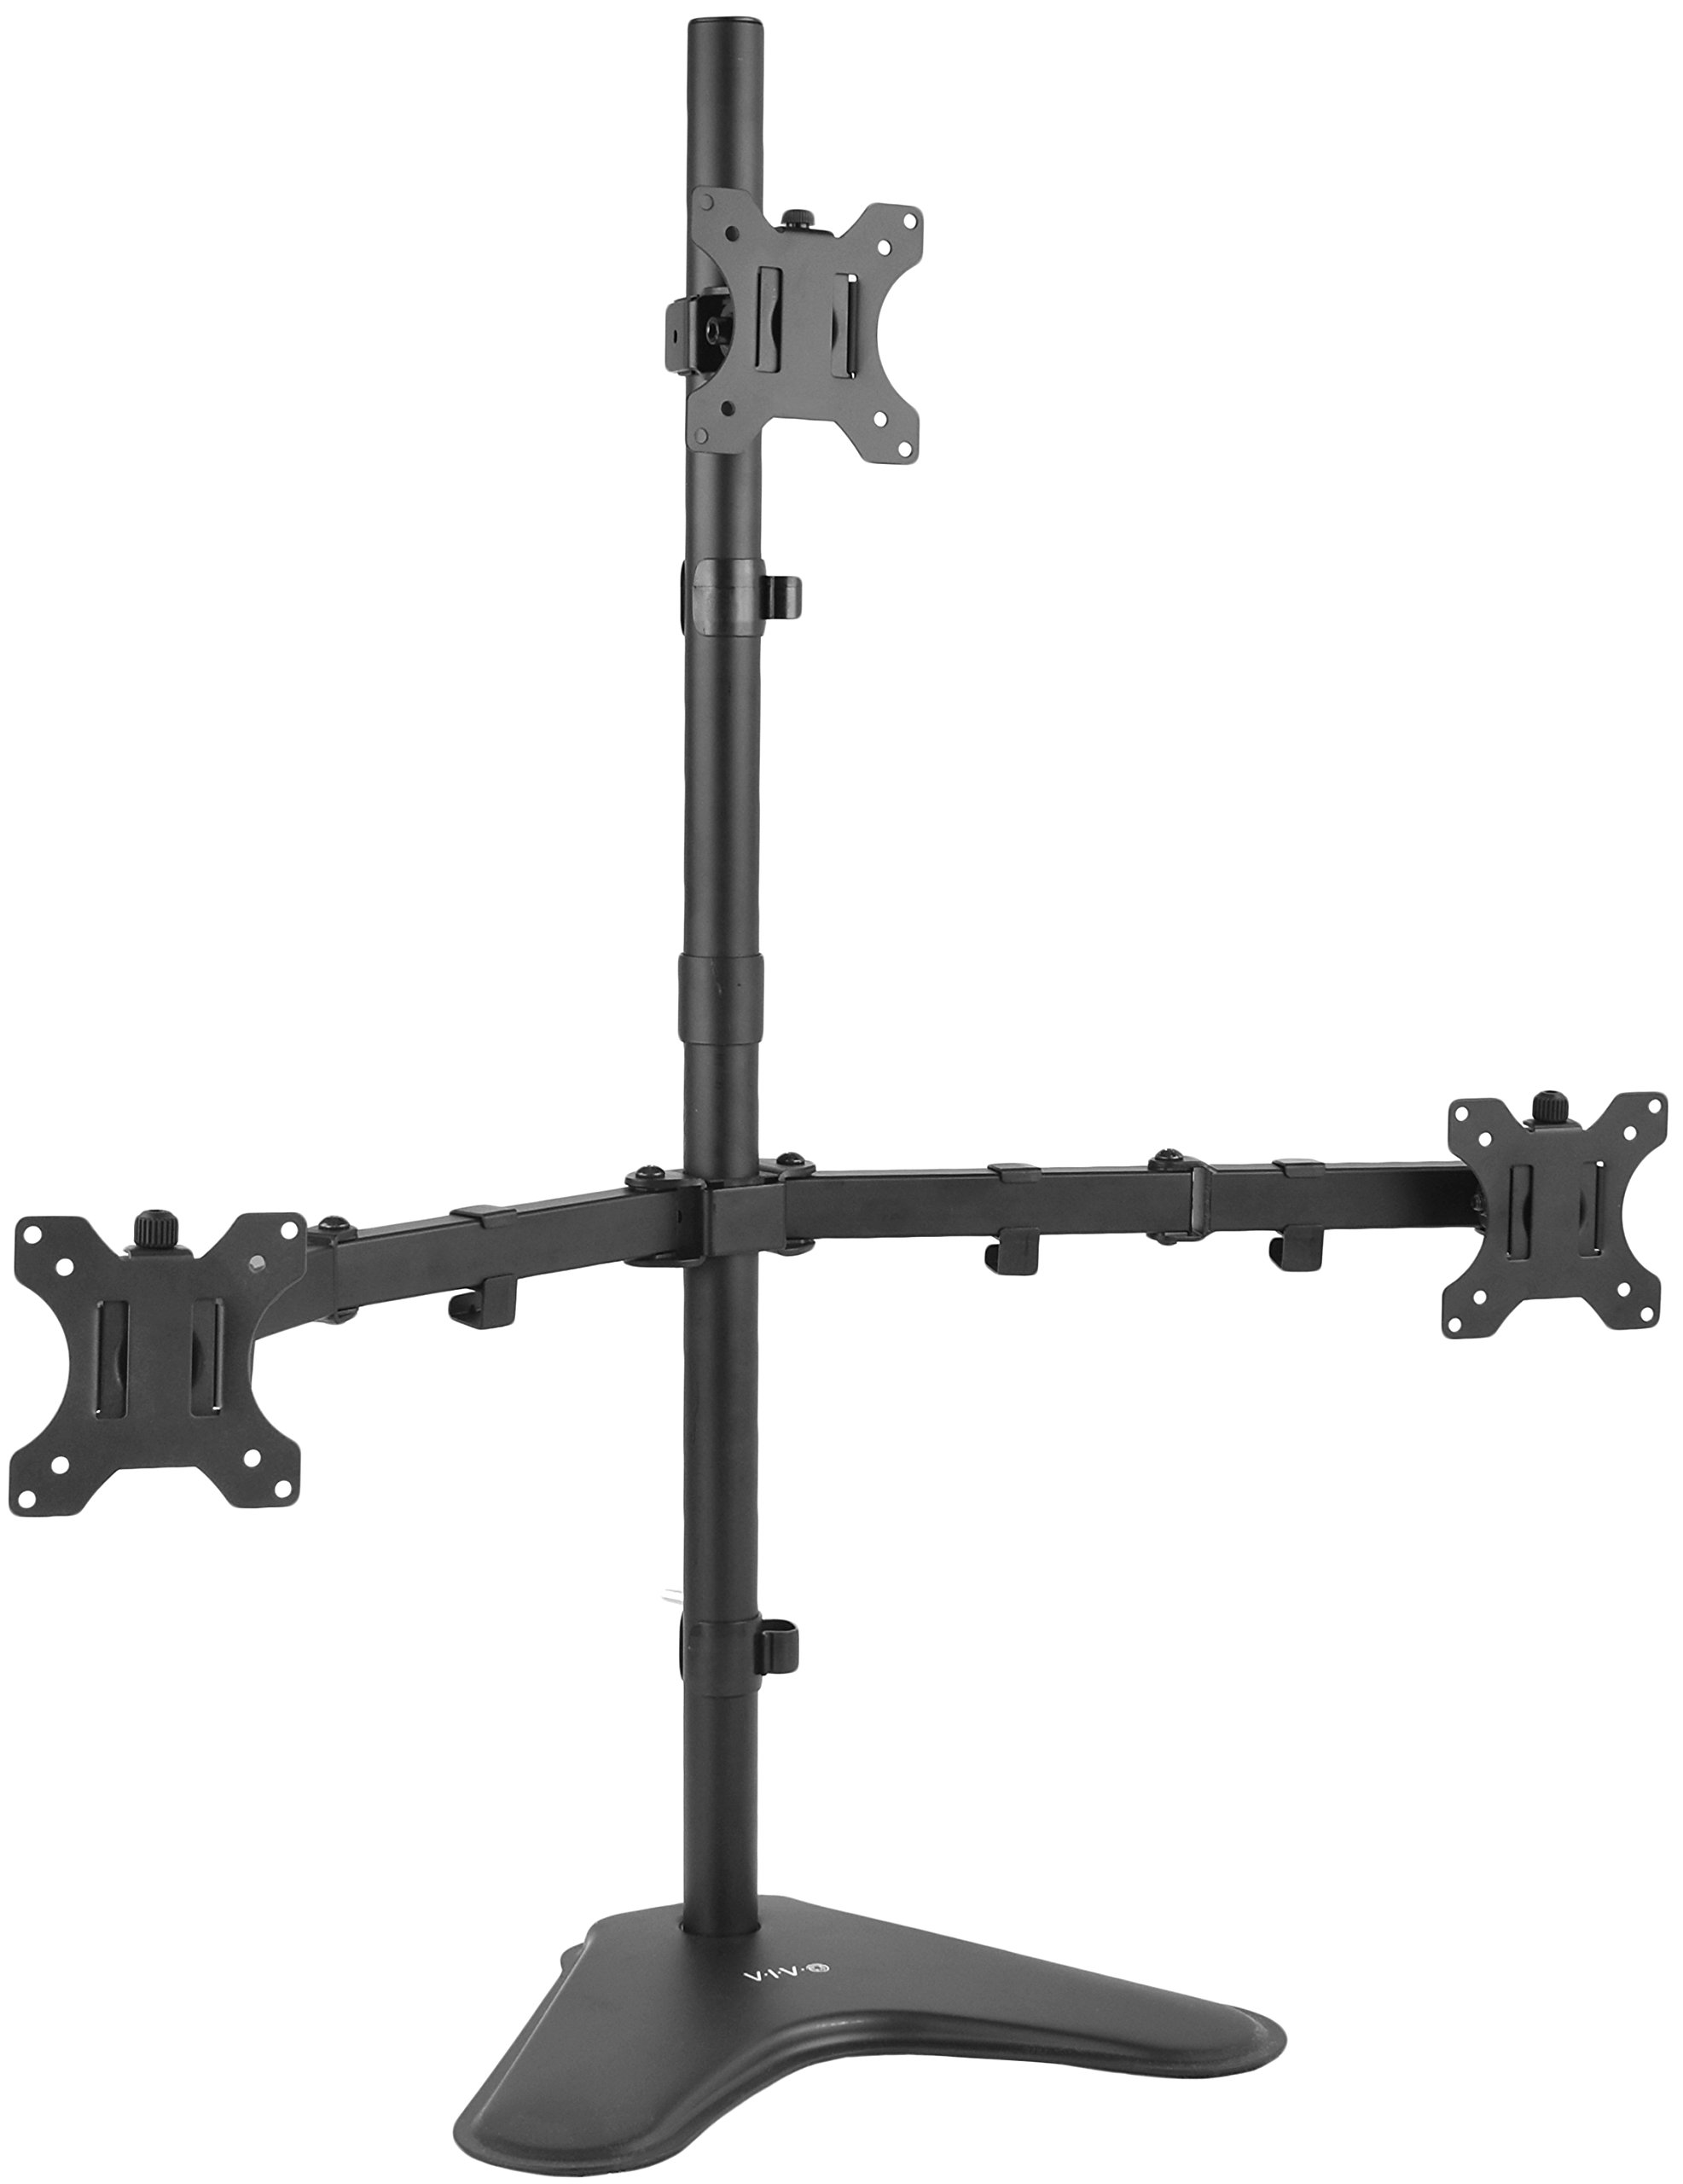 VIVO Triple LCD LED Computer Monitor Desk Stand   Free Standing Heavy Duty Fully Adjustable Mount for 3 Screens up to 30 inches (STAND-V003E) by VIVO